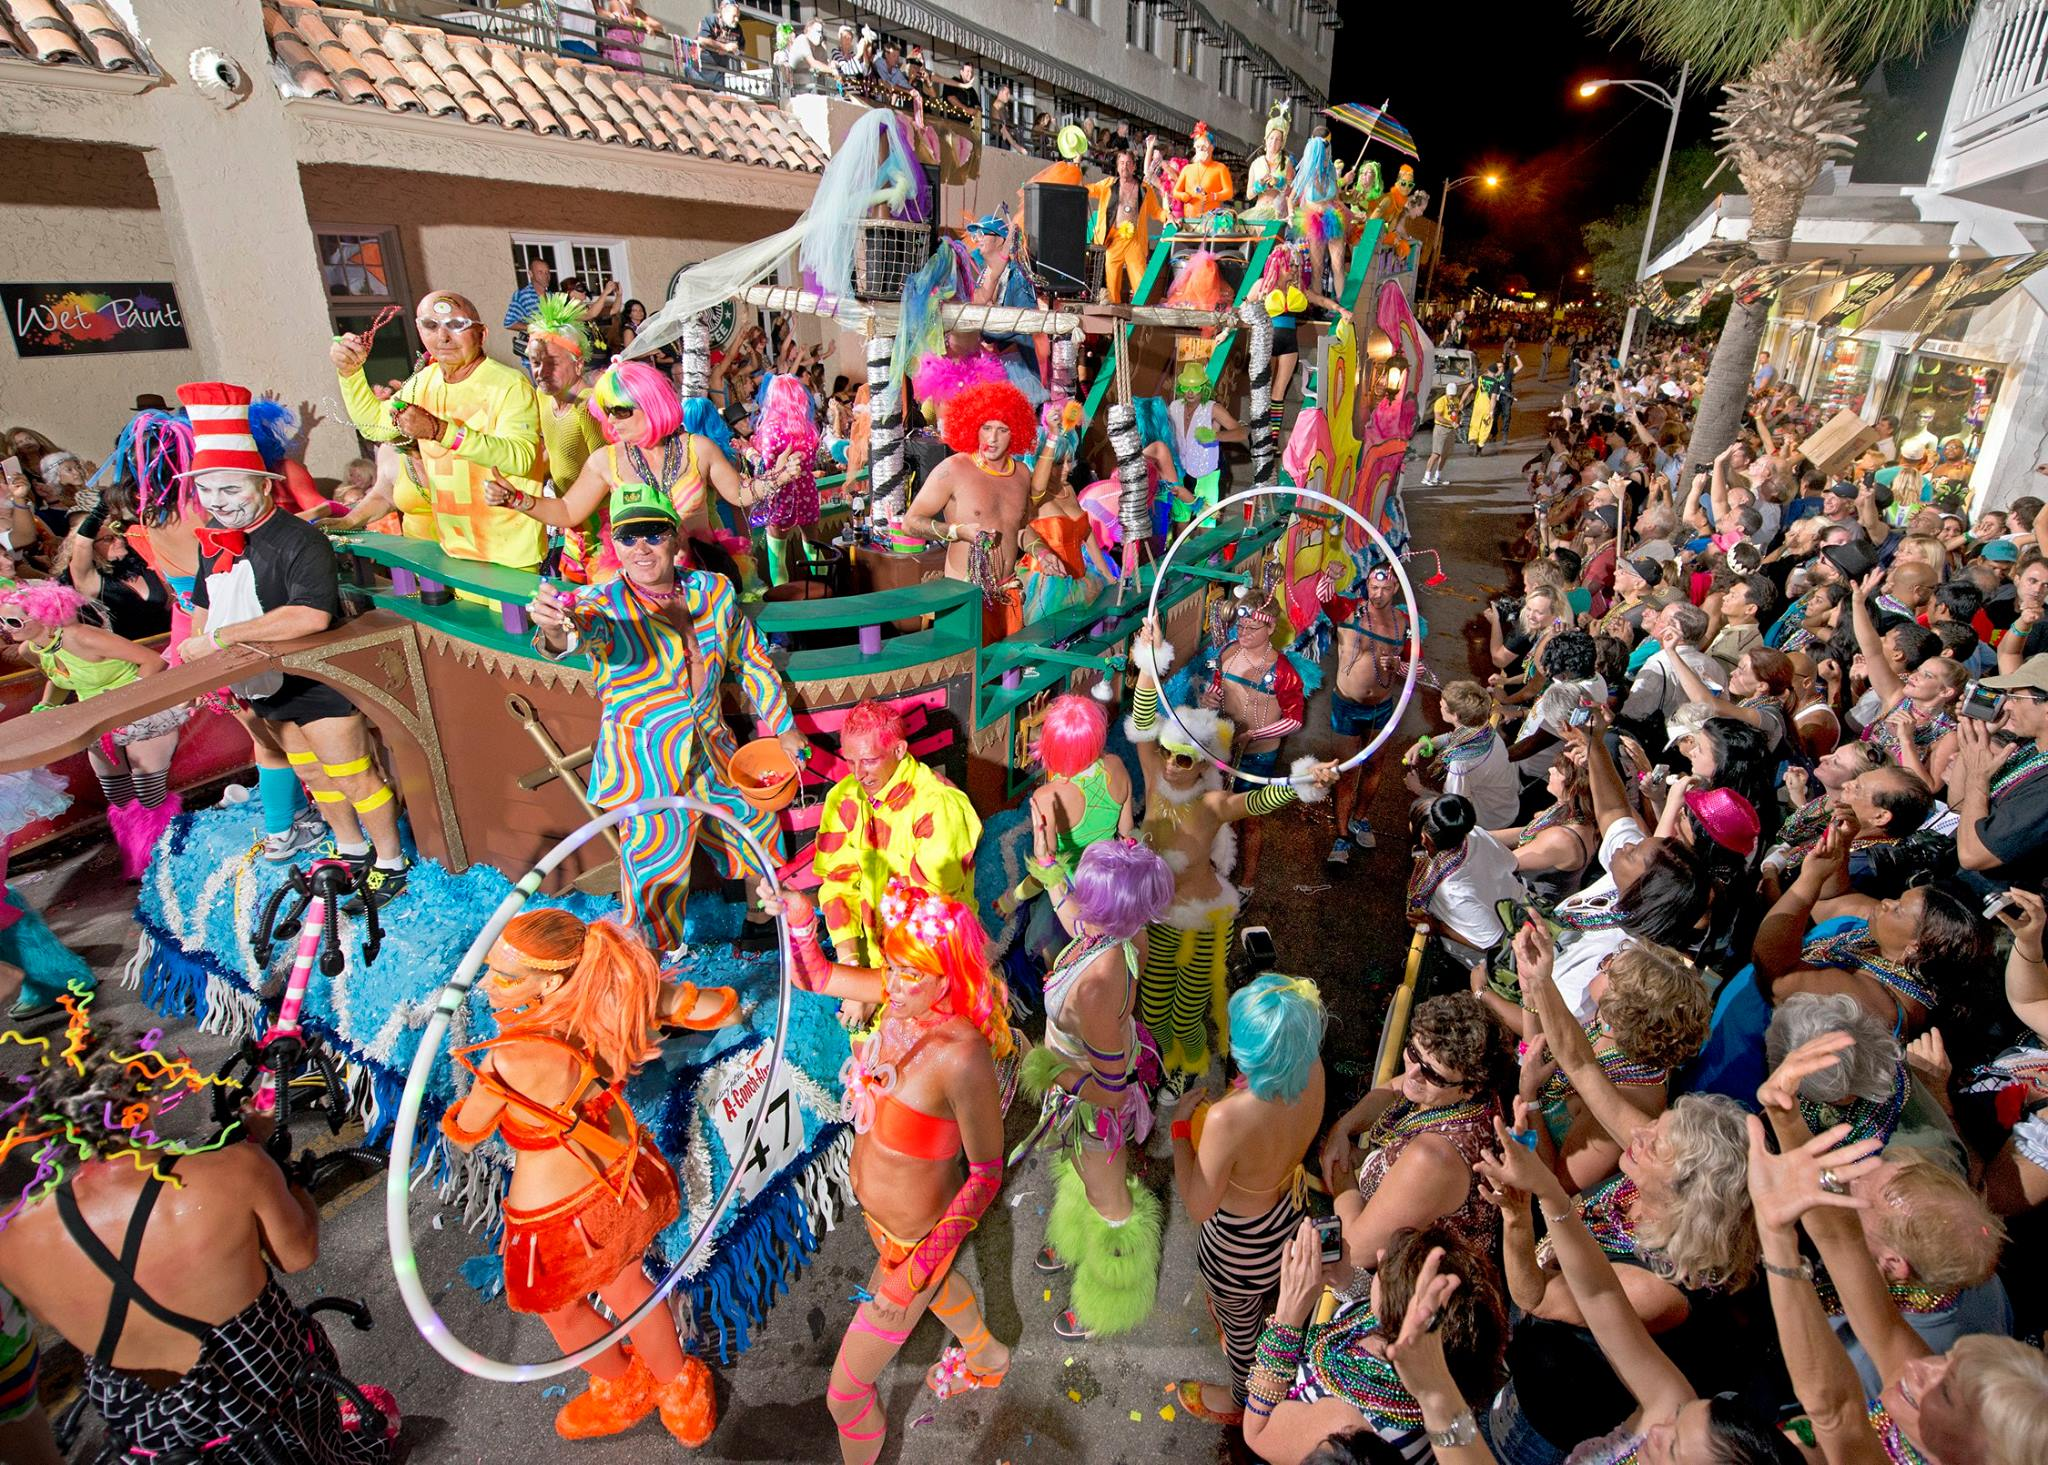 Key West's Fantasy Fest Underway with Creative Costumes and Colorful Craziness Now through Sunday, Oct. 29